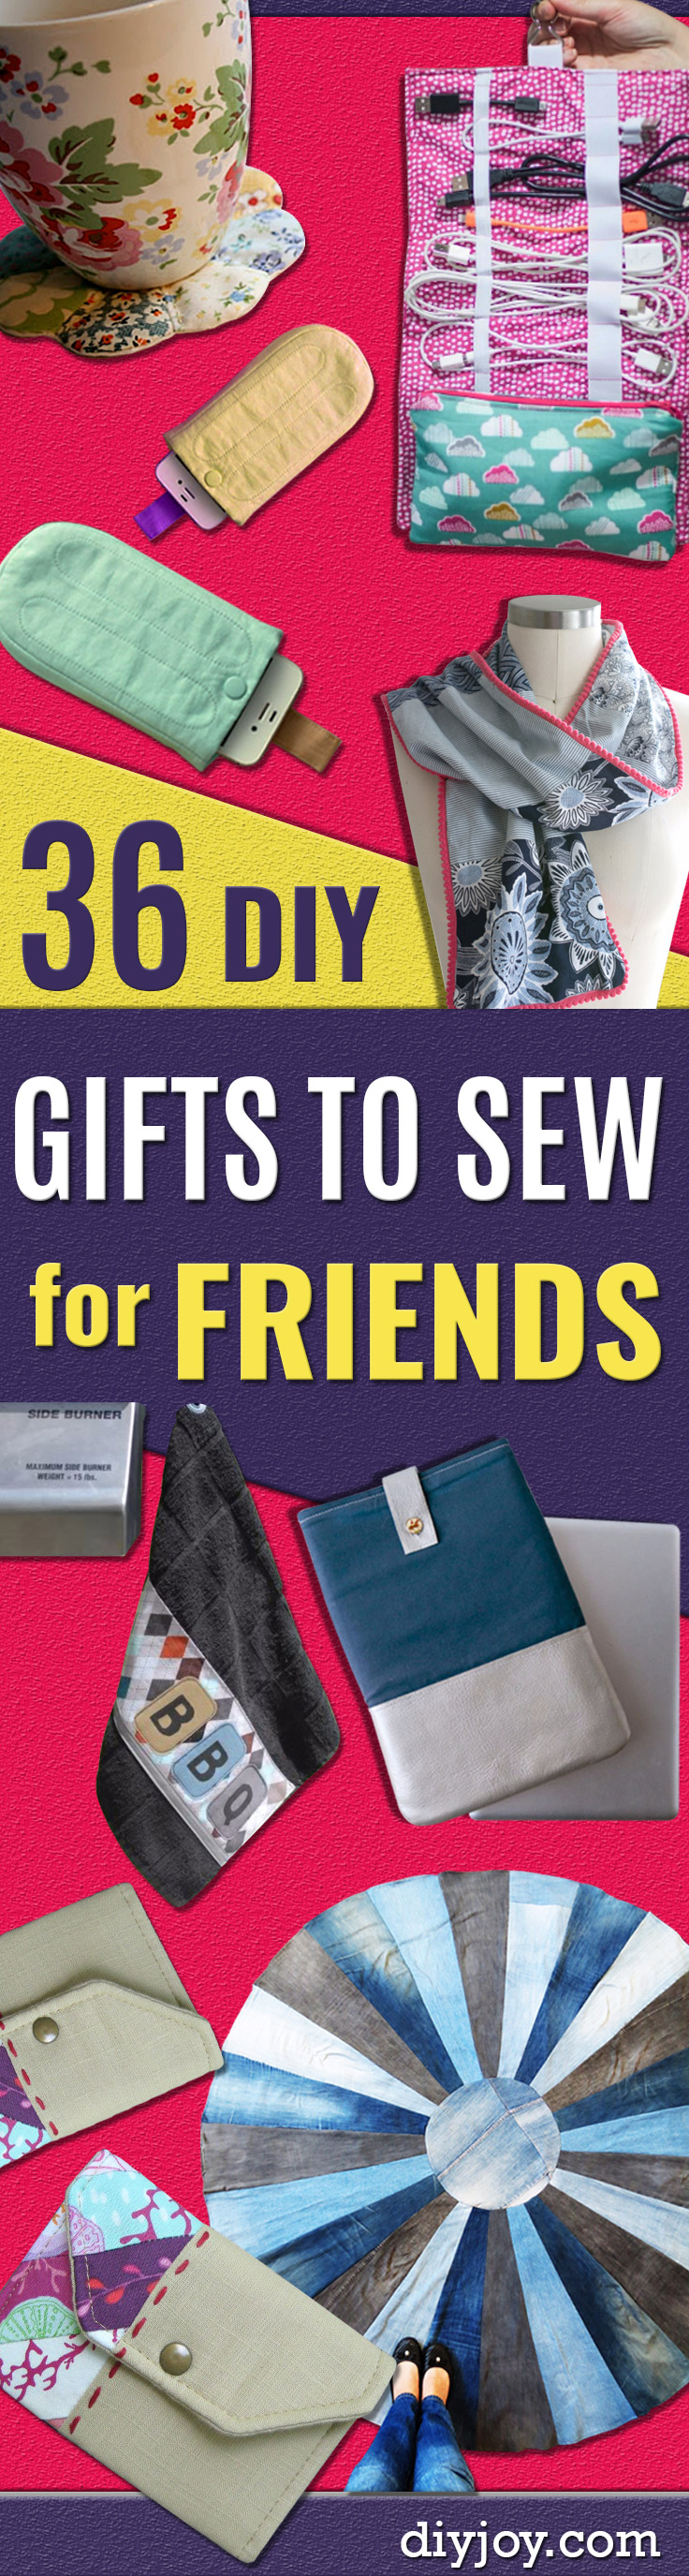 DIY Gifts To Sew For Friends - Quick and Easy Sewing Projects and Free Patterns for Best Gift Ideas and Presents - Creative Step by Step Tutorials for Beginners - Cute Home Decor, Accessories, Kitchen Crafts and DIY Fashion Ideas #sewing #gifts #diyideas